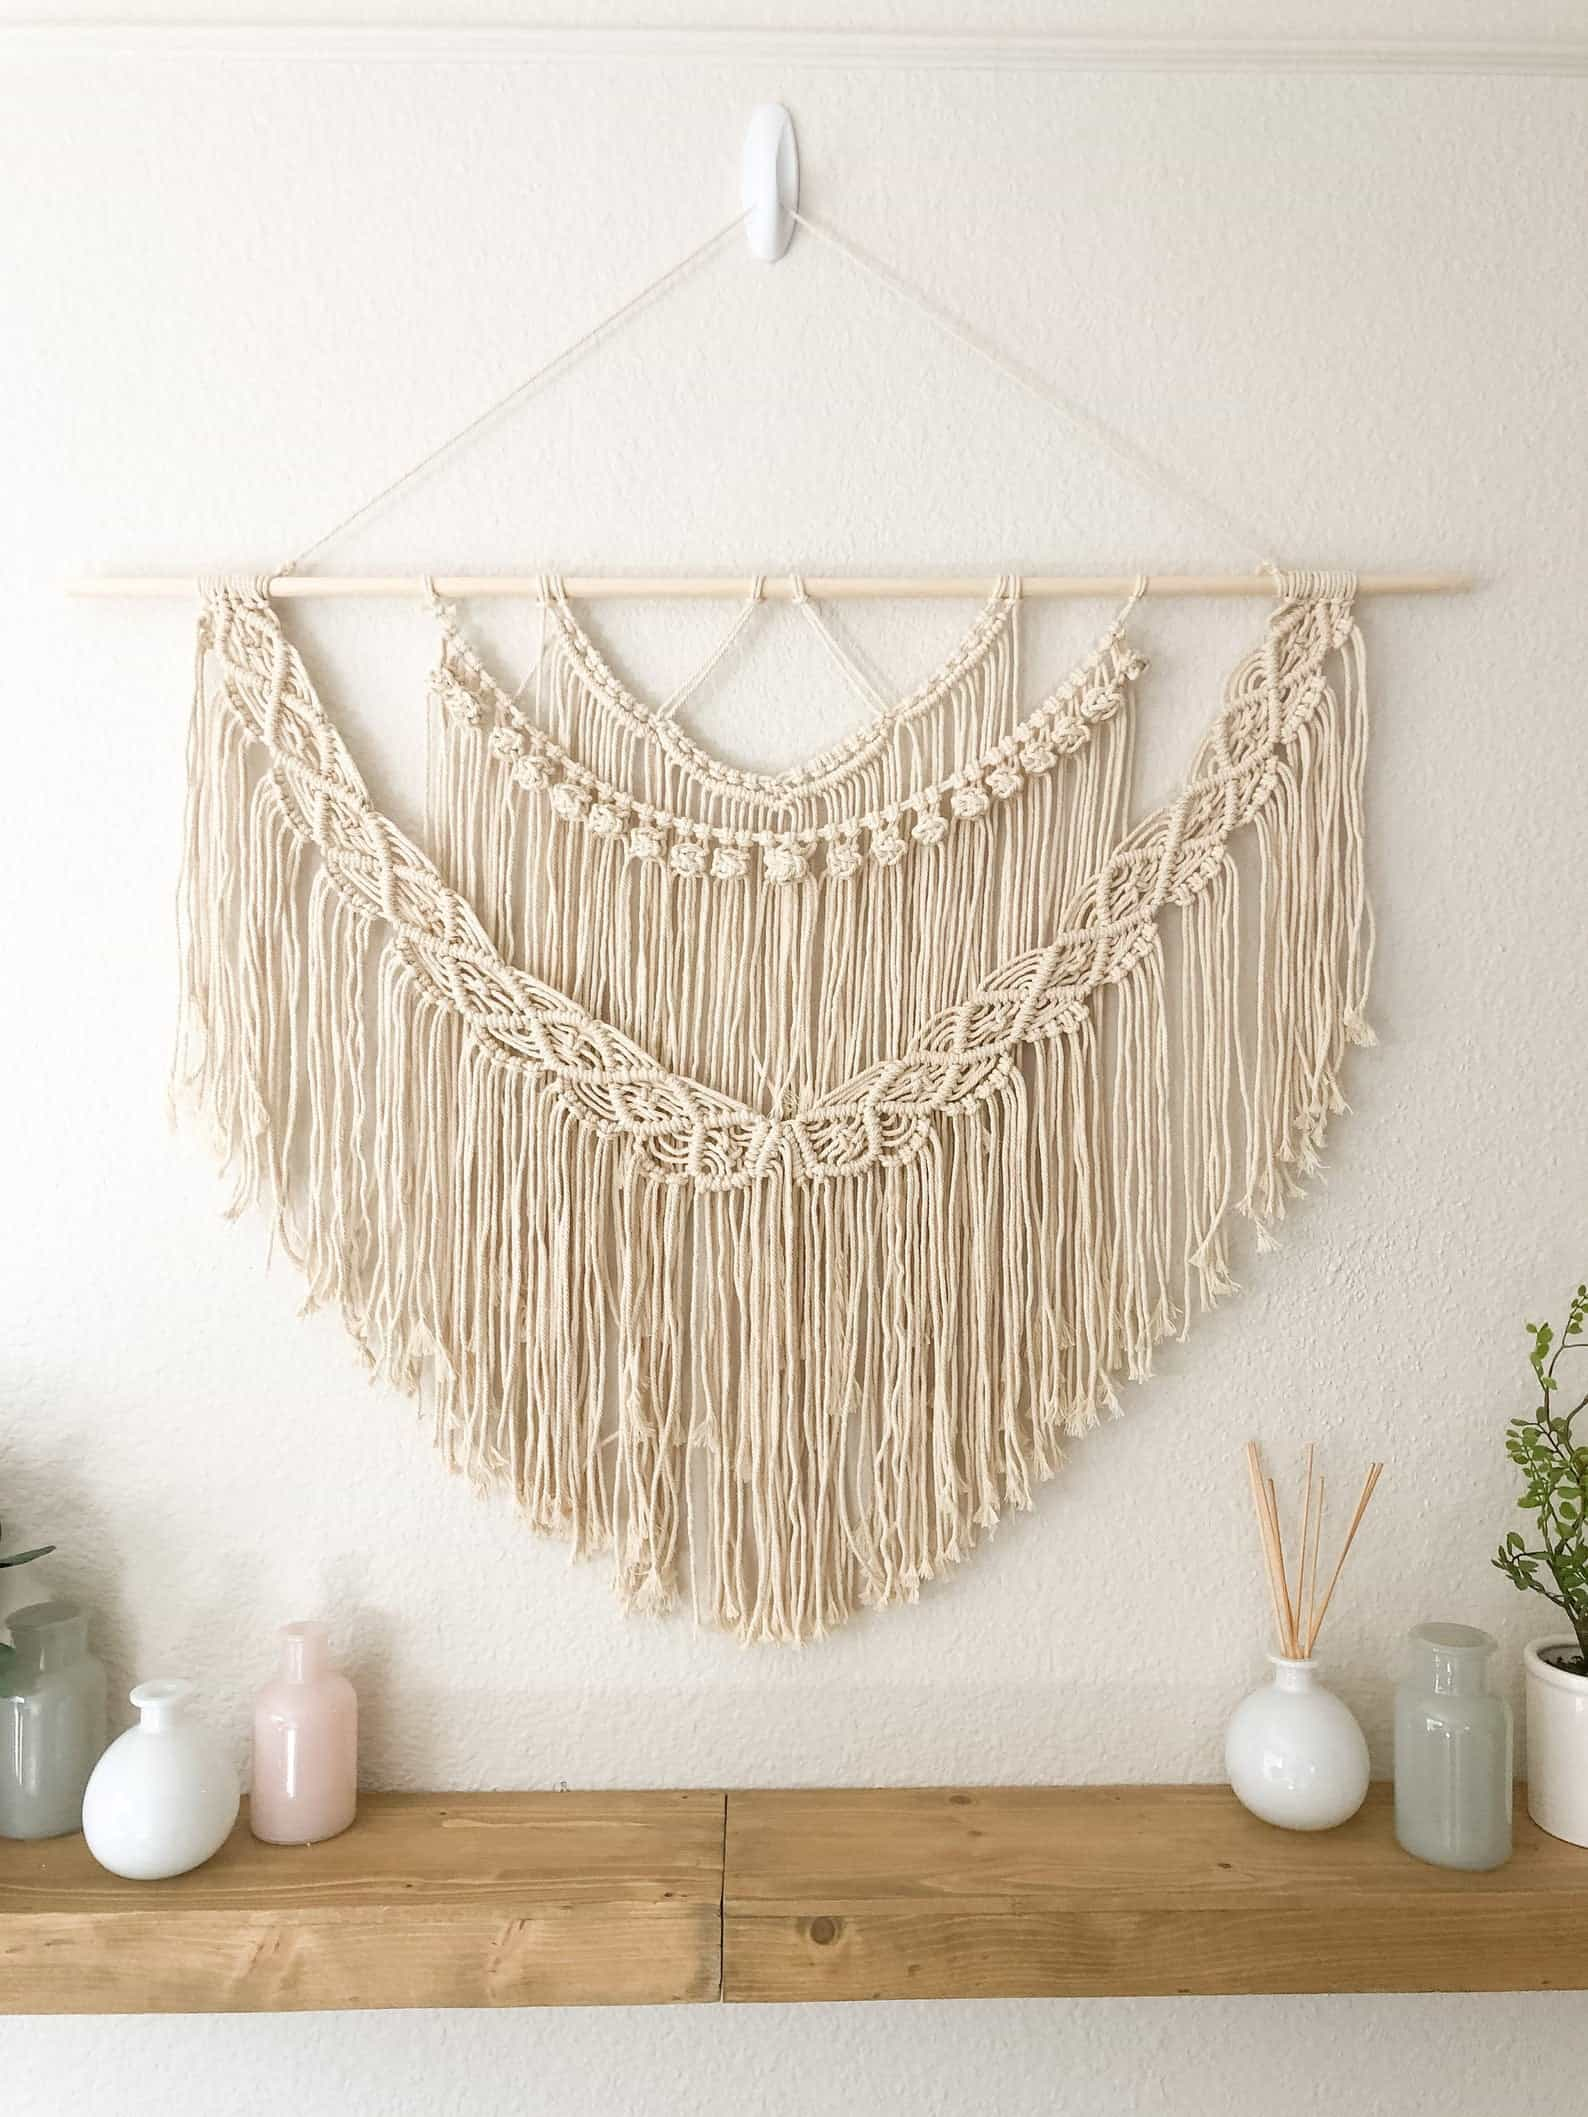 Natural macrame hanging with birch wood